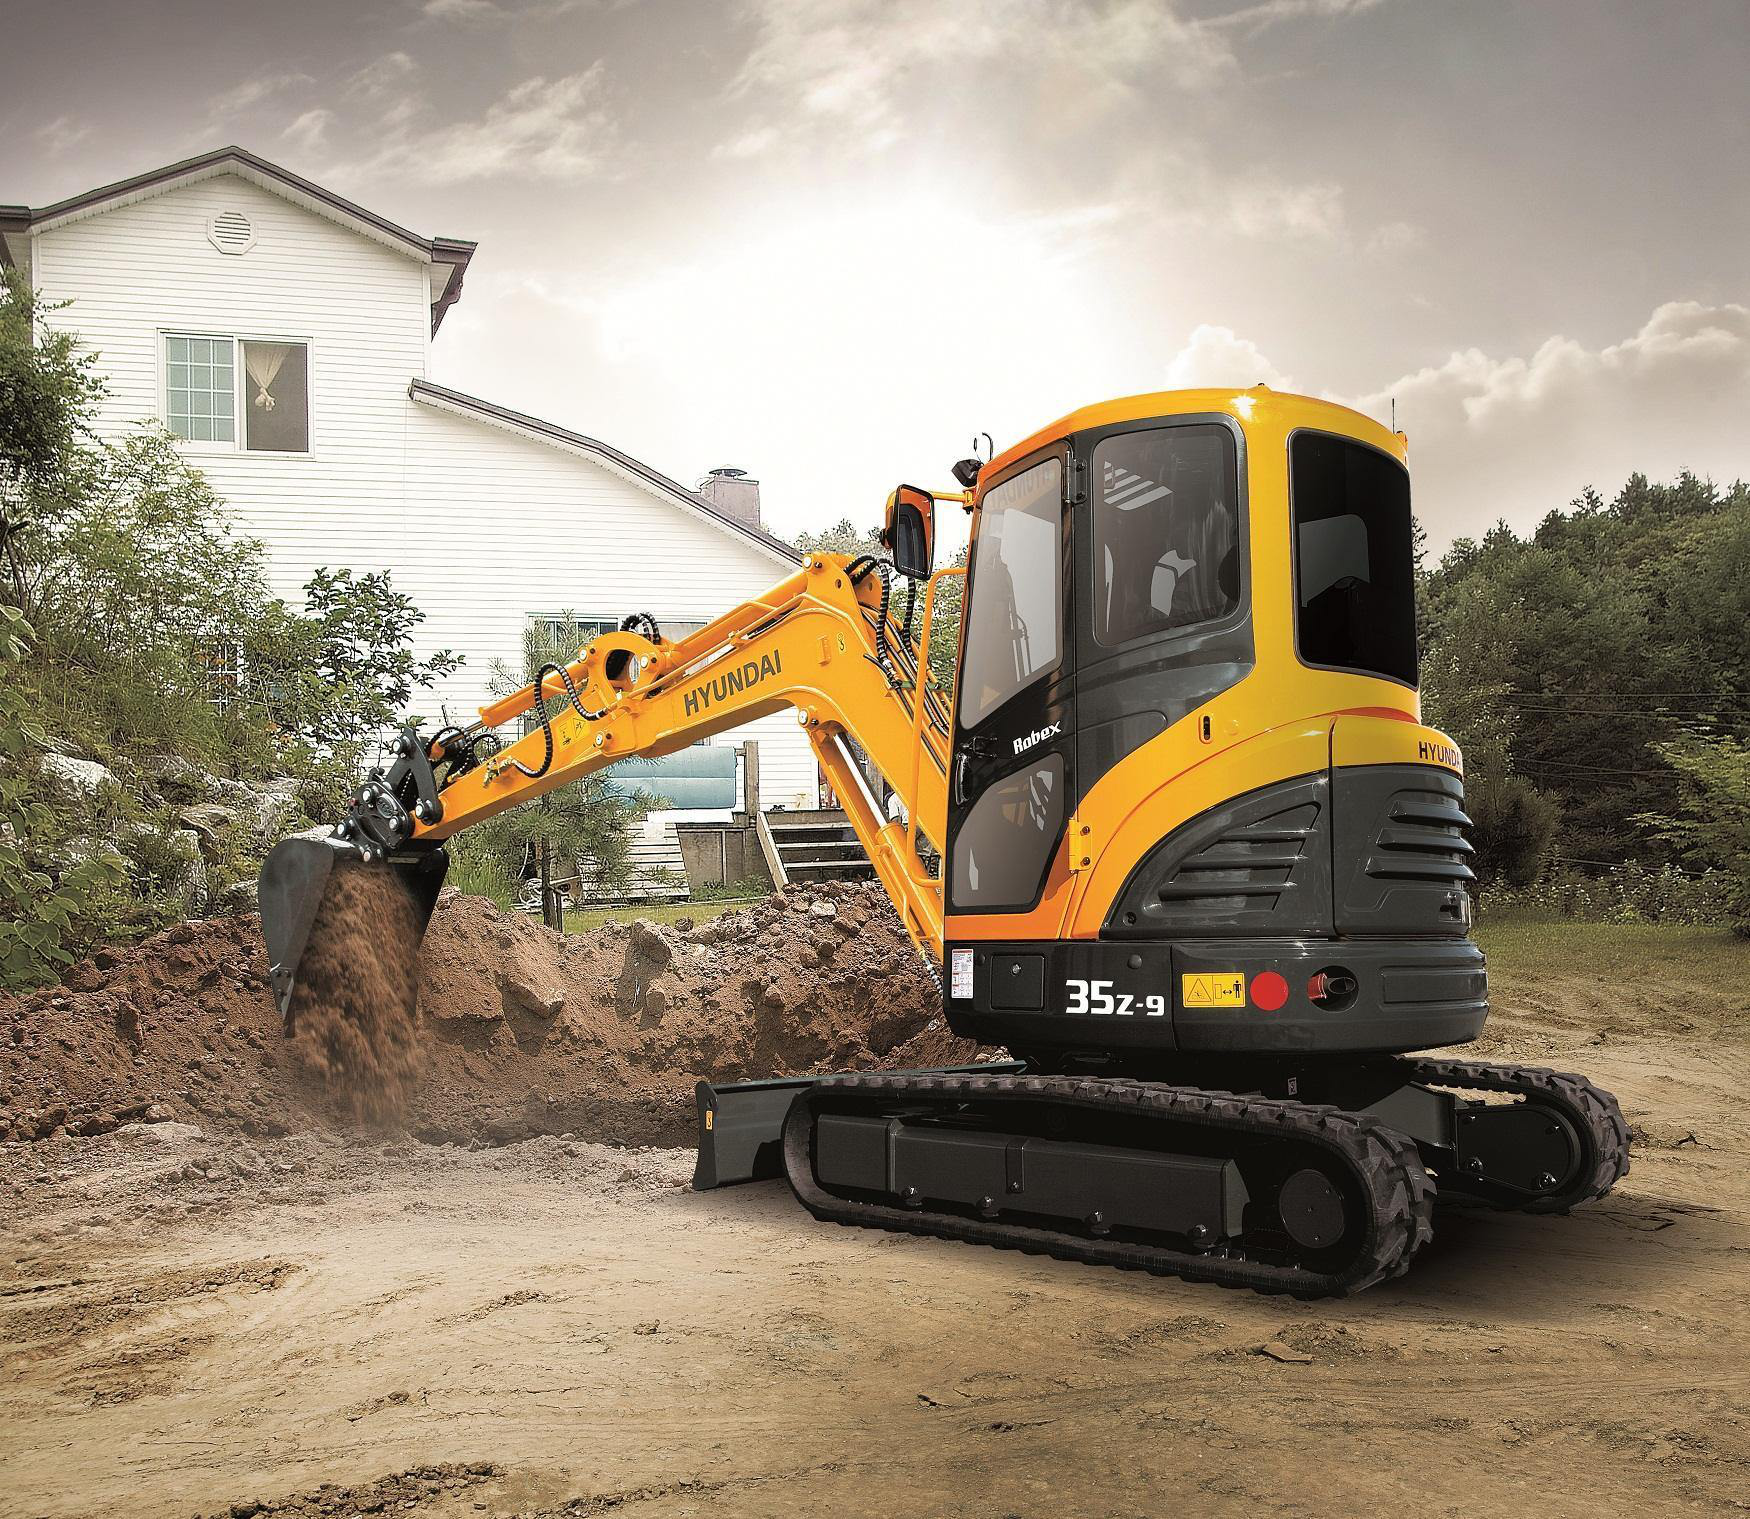 Hyundai R35z 9 Compact Excavator Performs In Tight Work Spaces